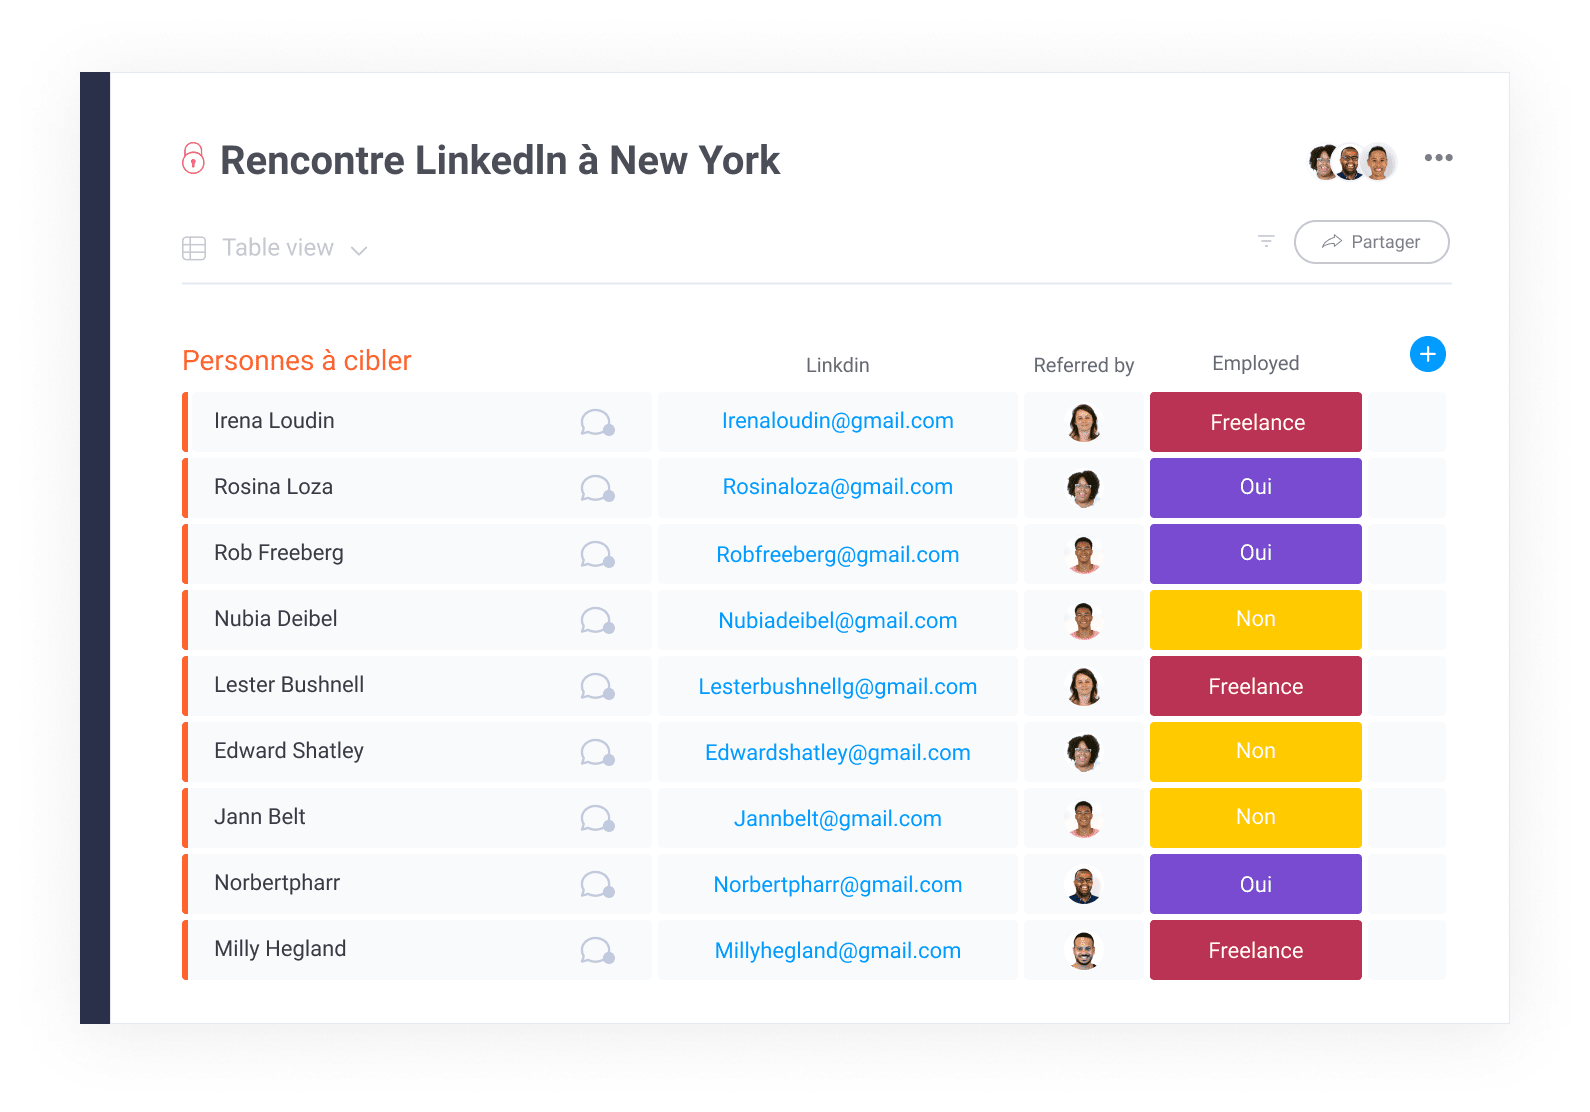 FR_board_LinkedIn_meetup_in_New_York.png